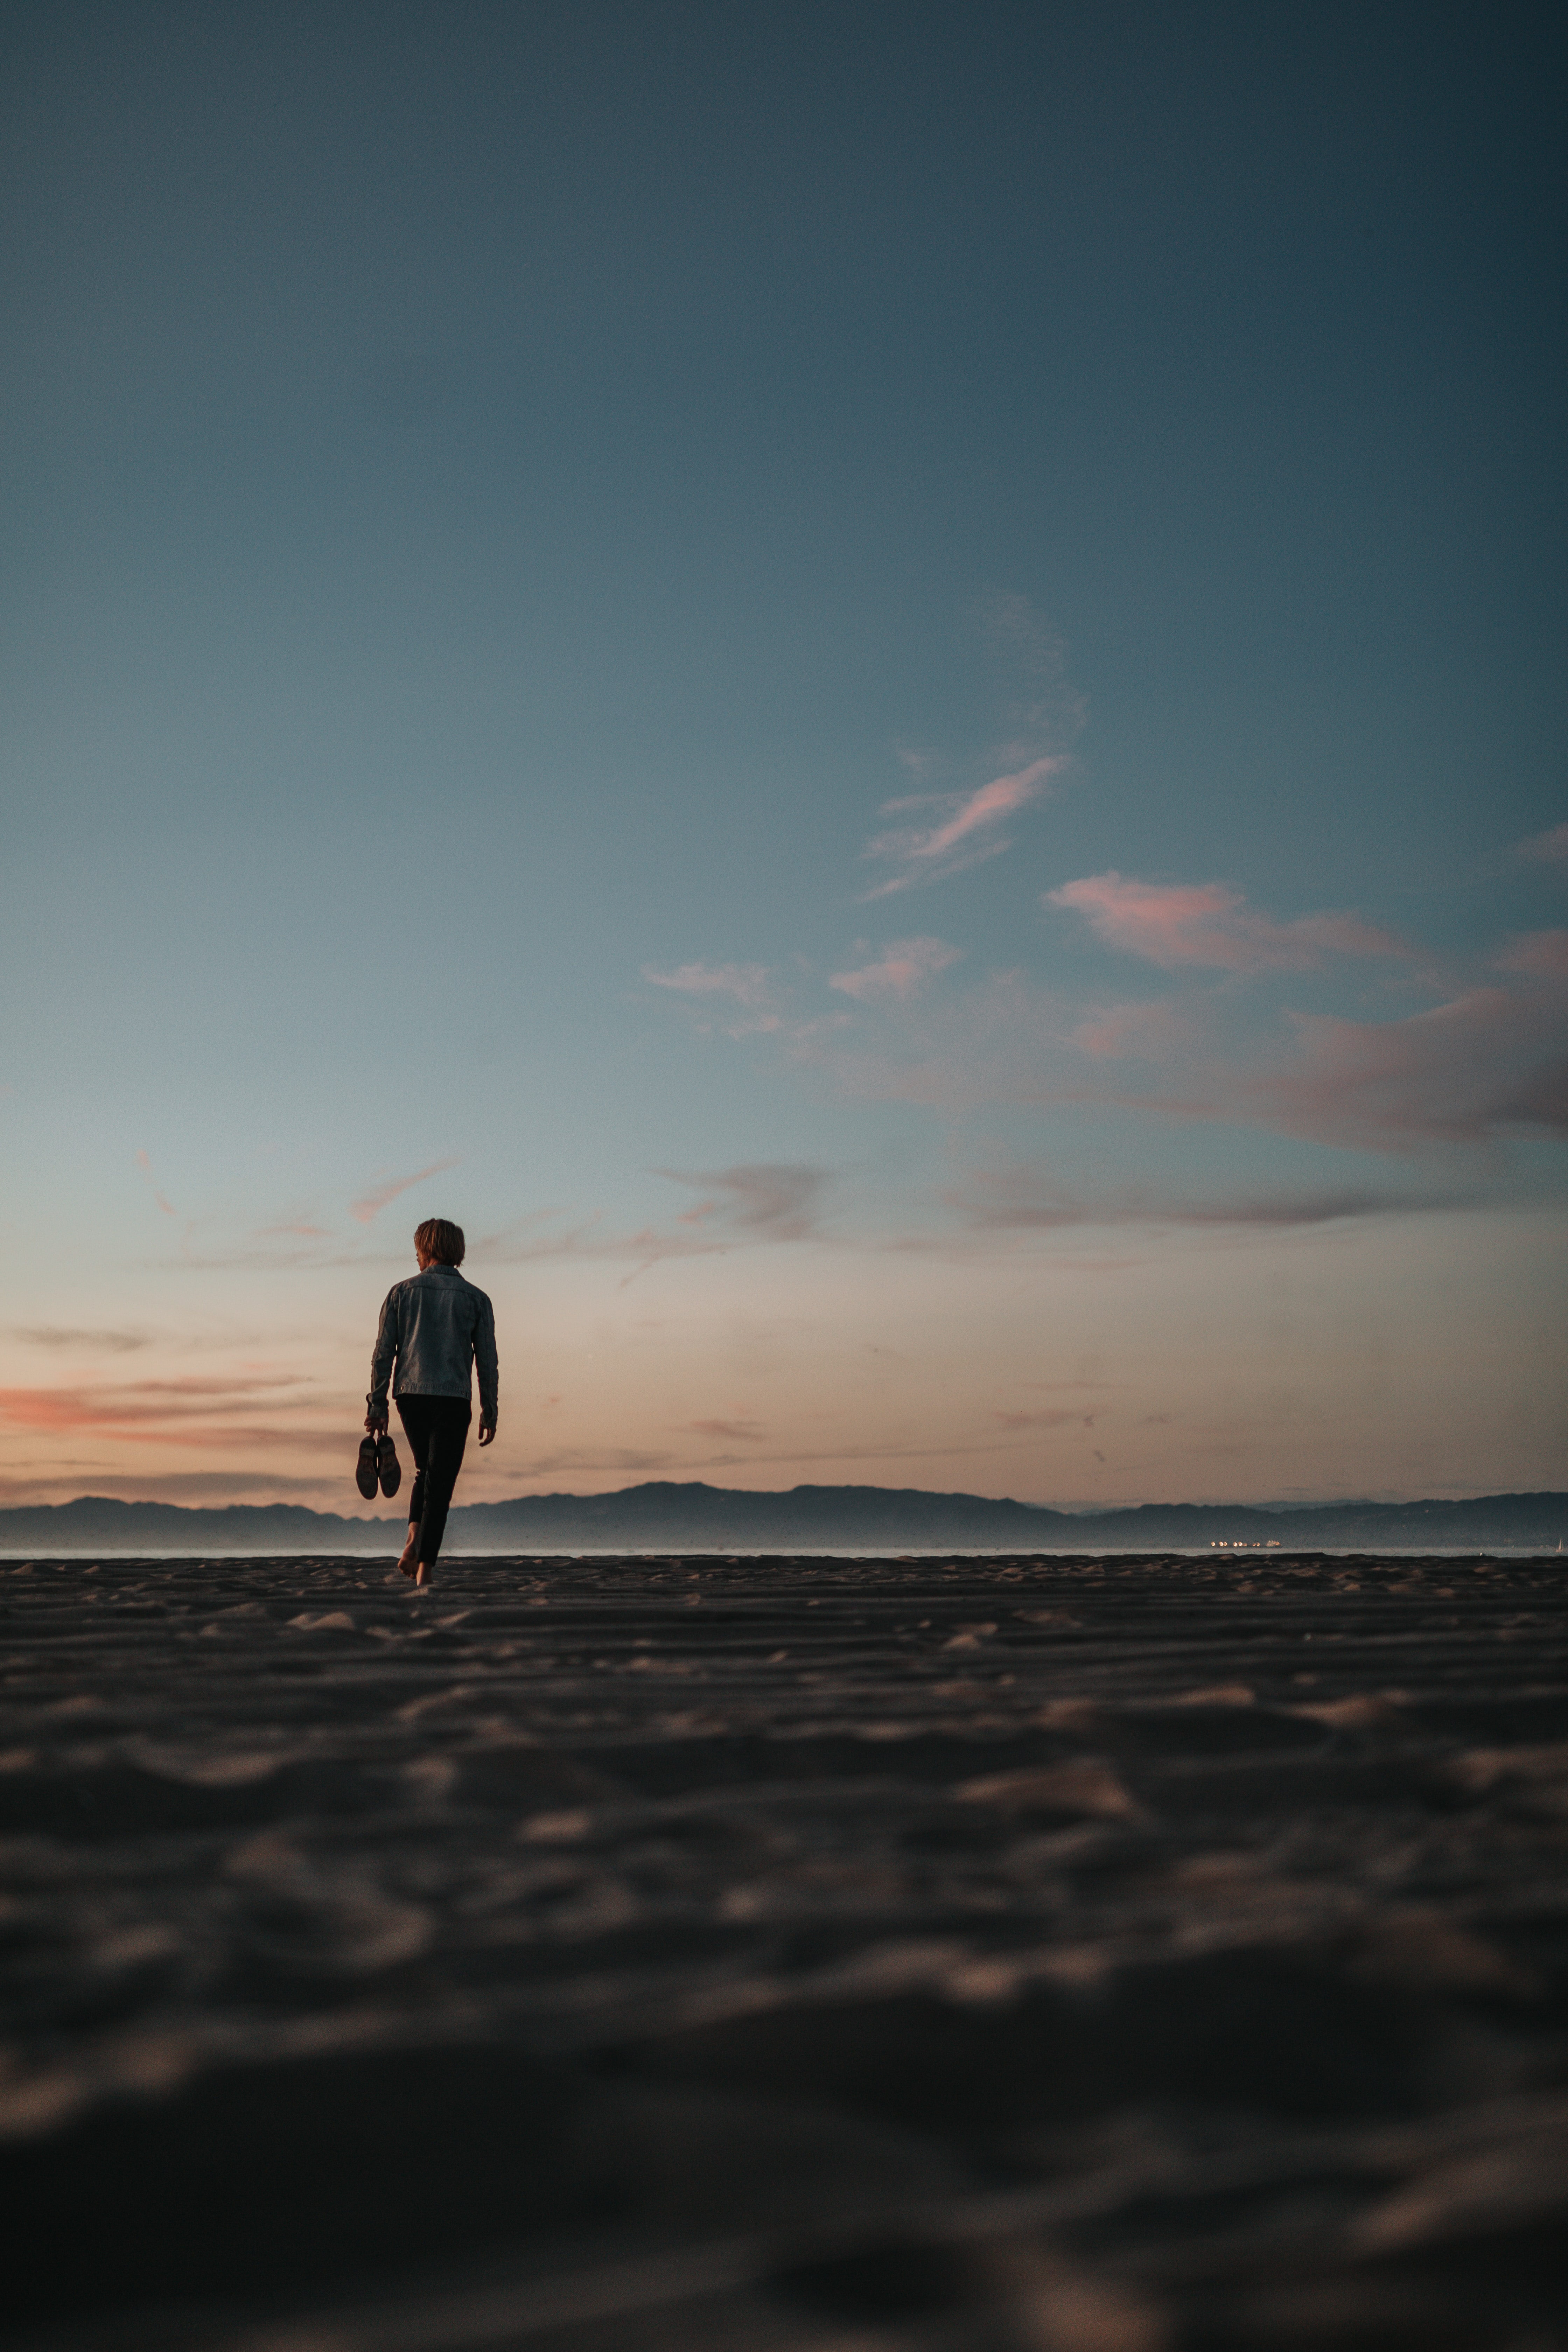 man walking on sand while holding his footwears